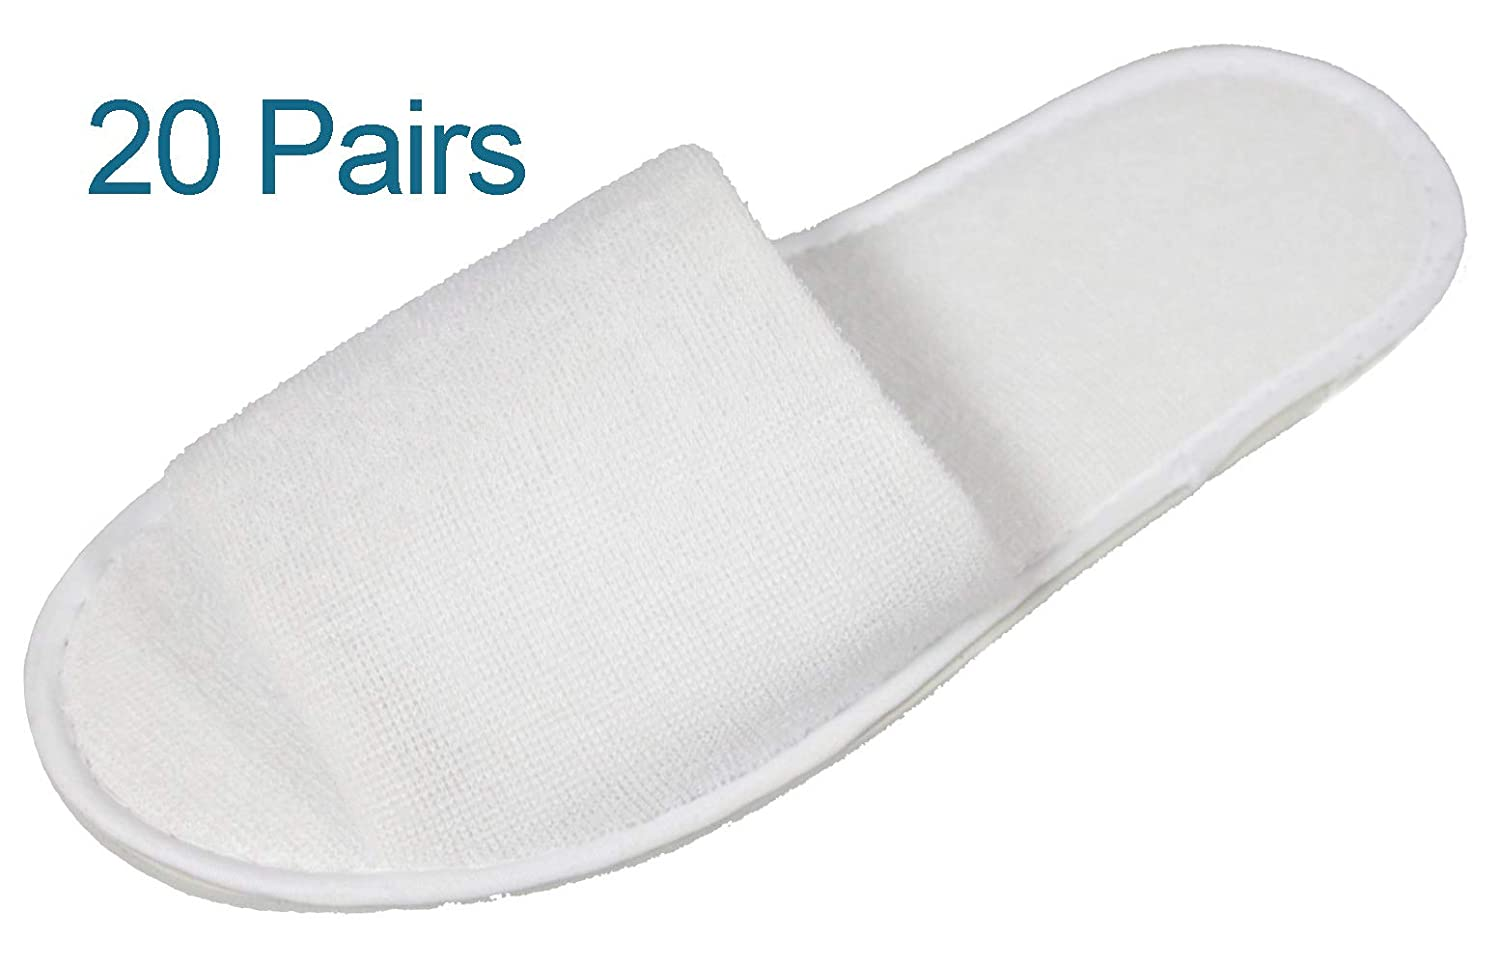 43121e442ebfc Luxehome White Terry Open Toe Spa Slippers, 20 Pairs per Case